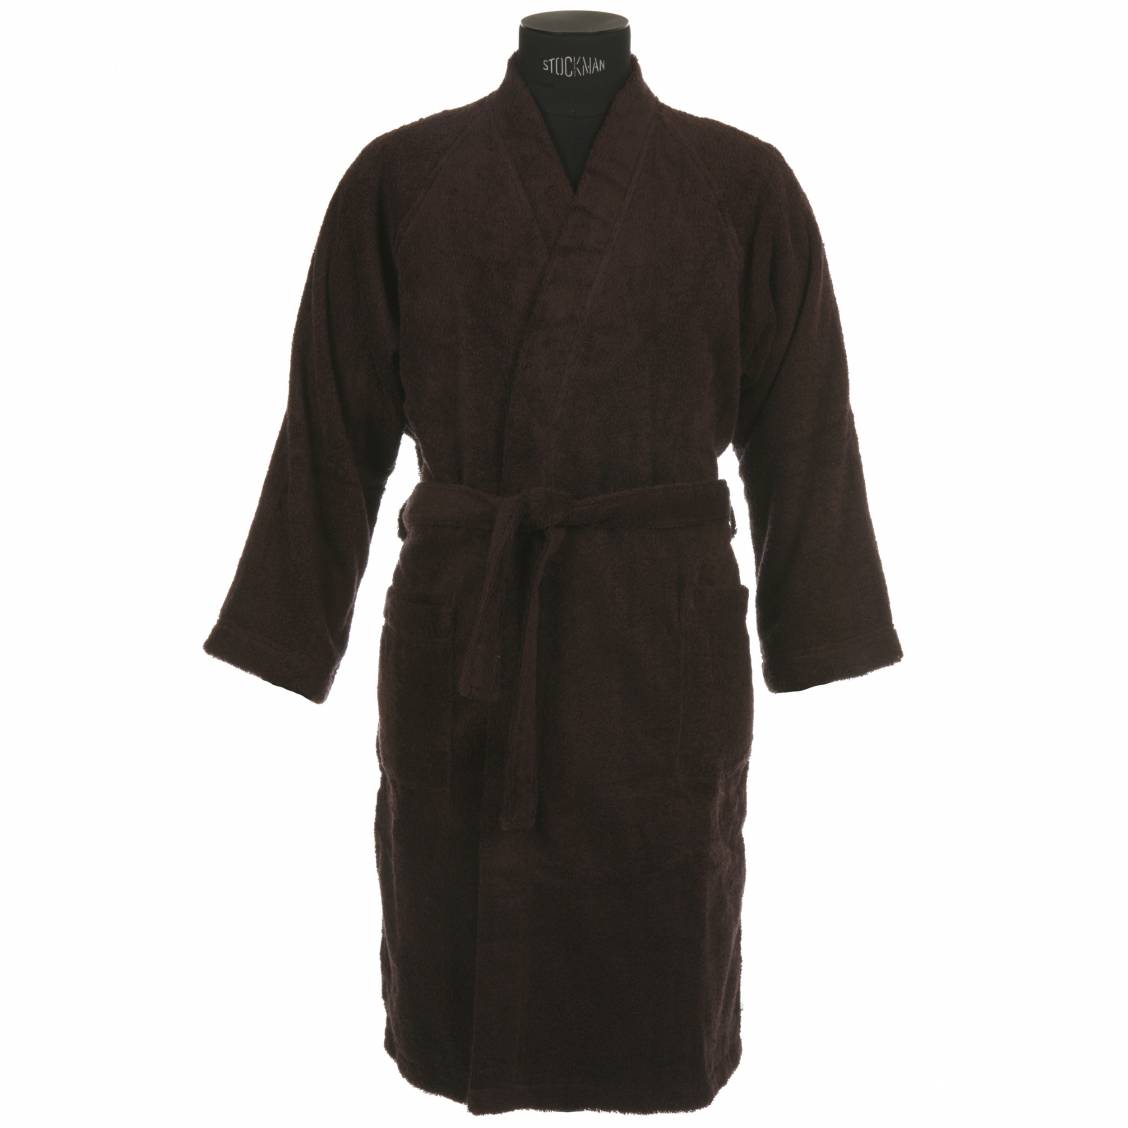 Peignoir de bain jalla marron